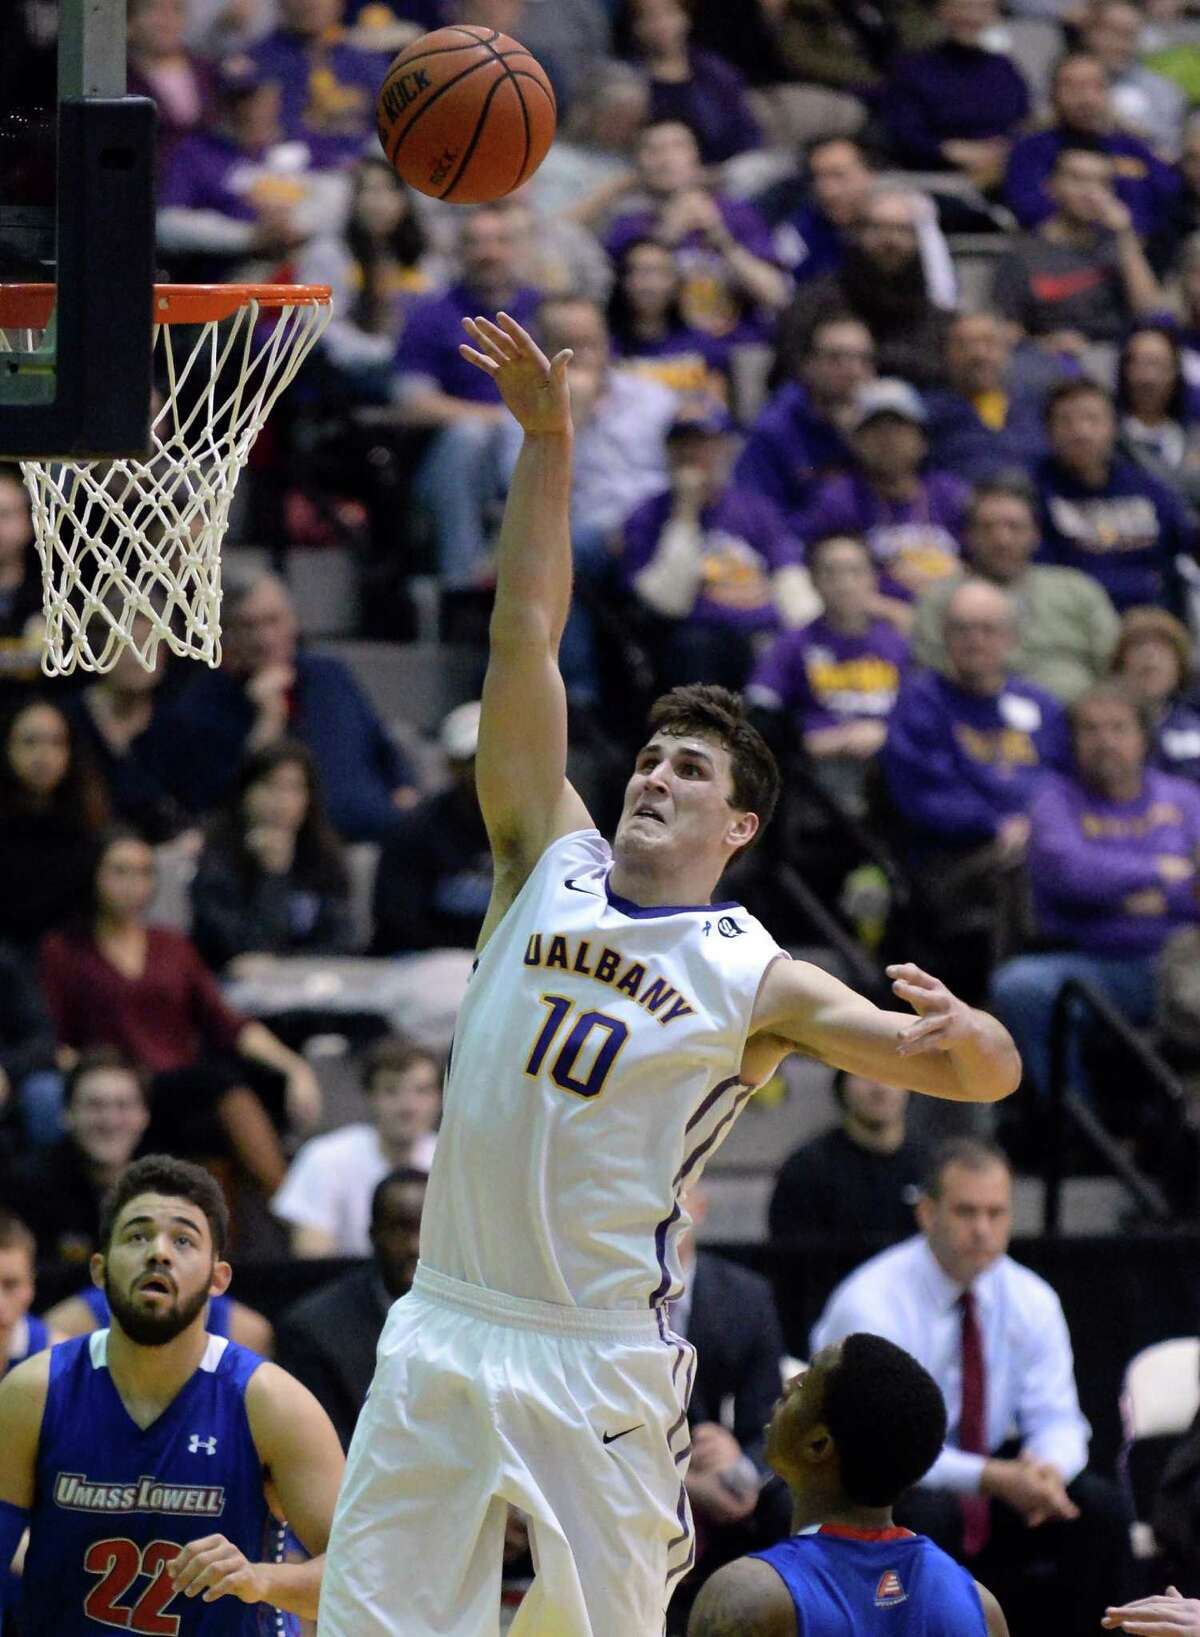 UAlbany's #10 Mike Rowleyis up in in for two against UMass-Lowell Saturday night at the SEFCU Arena Feb. 7, 2015, in Albany, NY. (John Carl D'Annibale / Times Union)